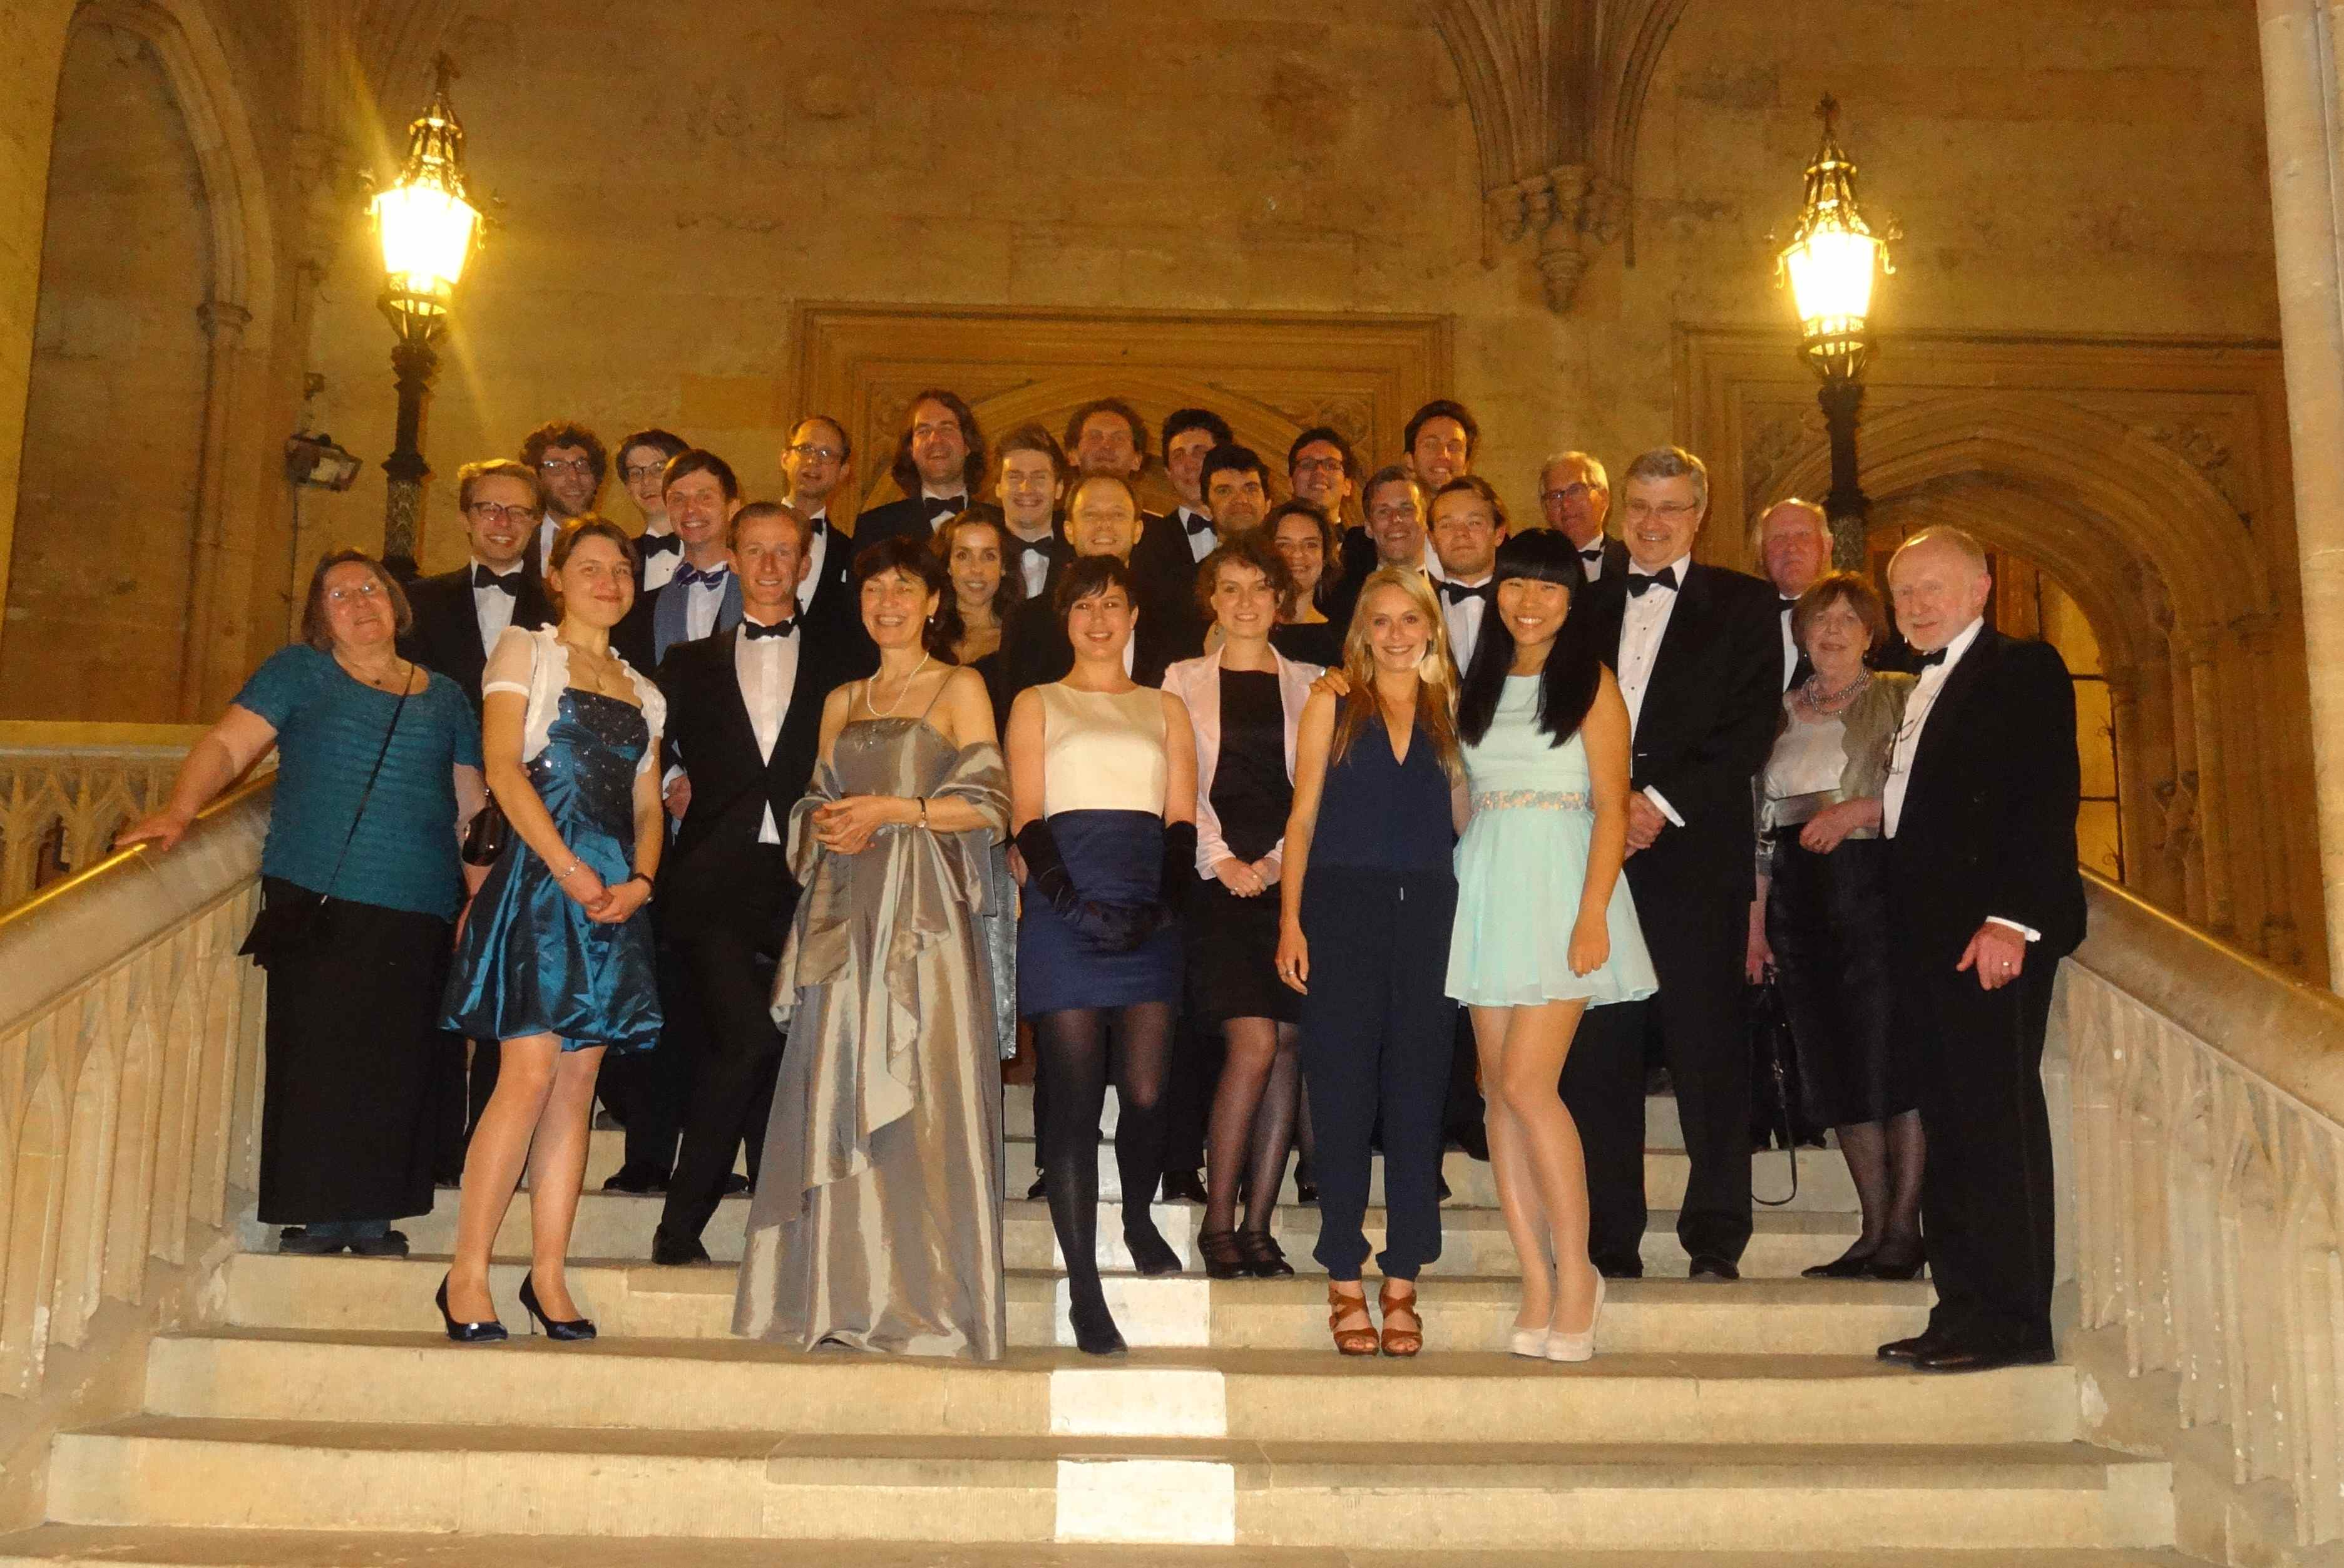 OUSL Members together with Luxembourgish and Belgian Oxford Students at the May 1 Dinner